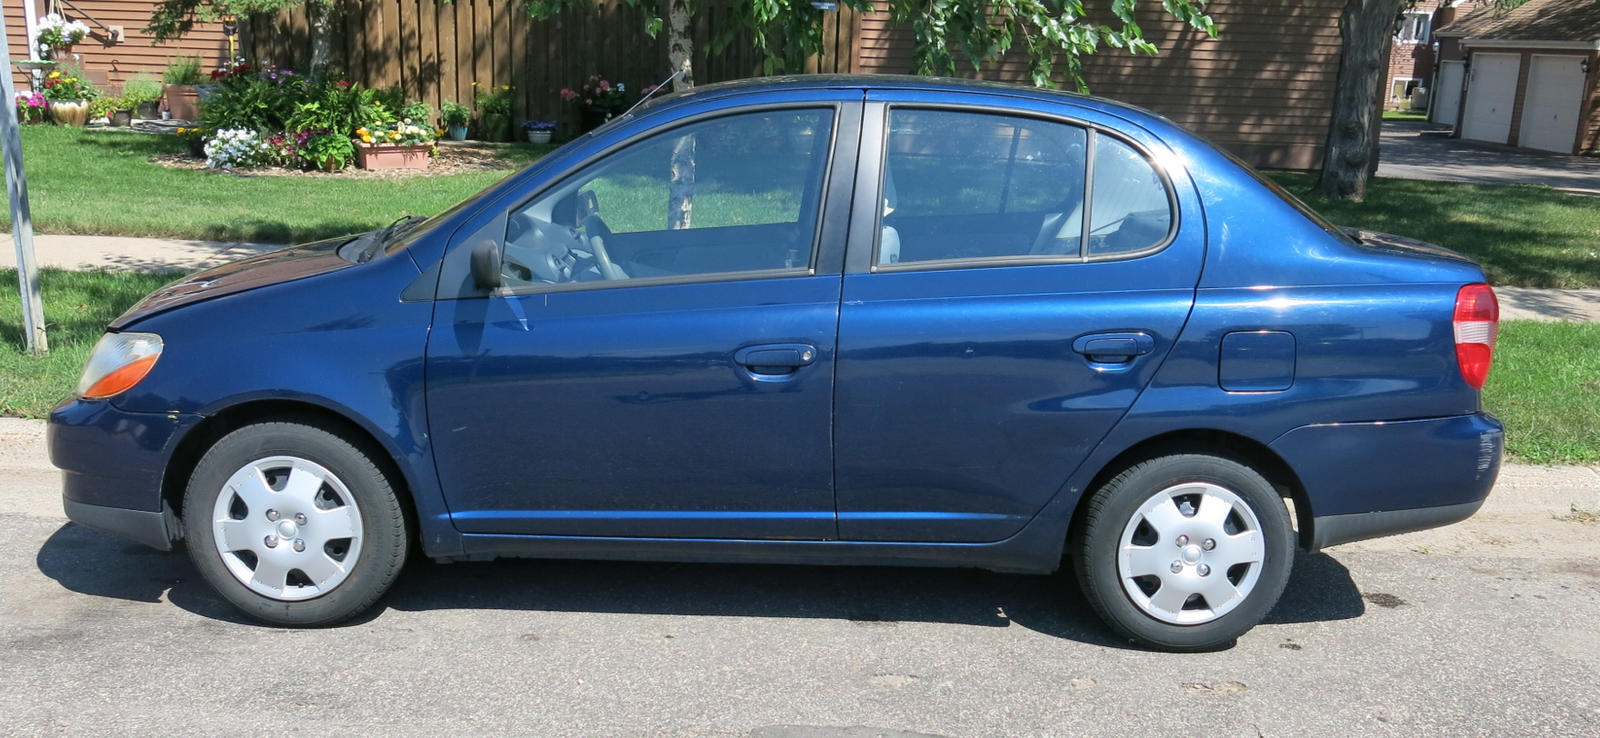 2004 toyota echo overview cargurus Car Pictures | 1600 x 738 png 1907kB